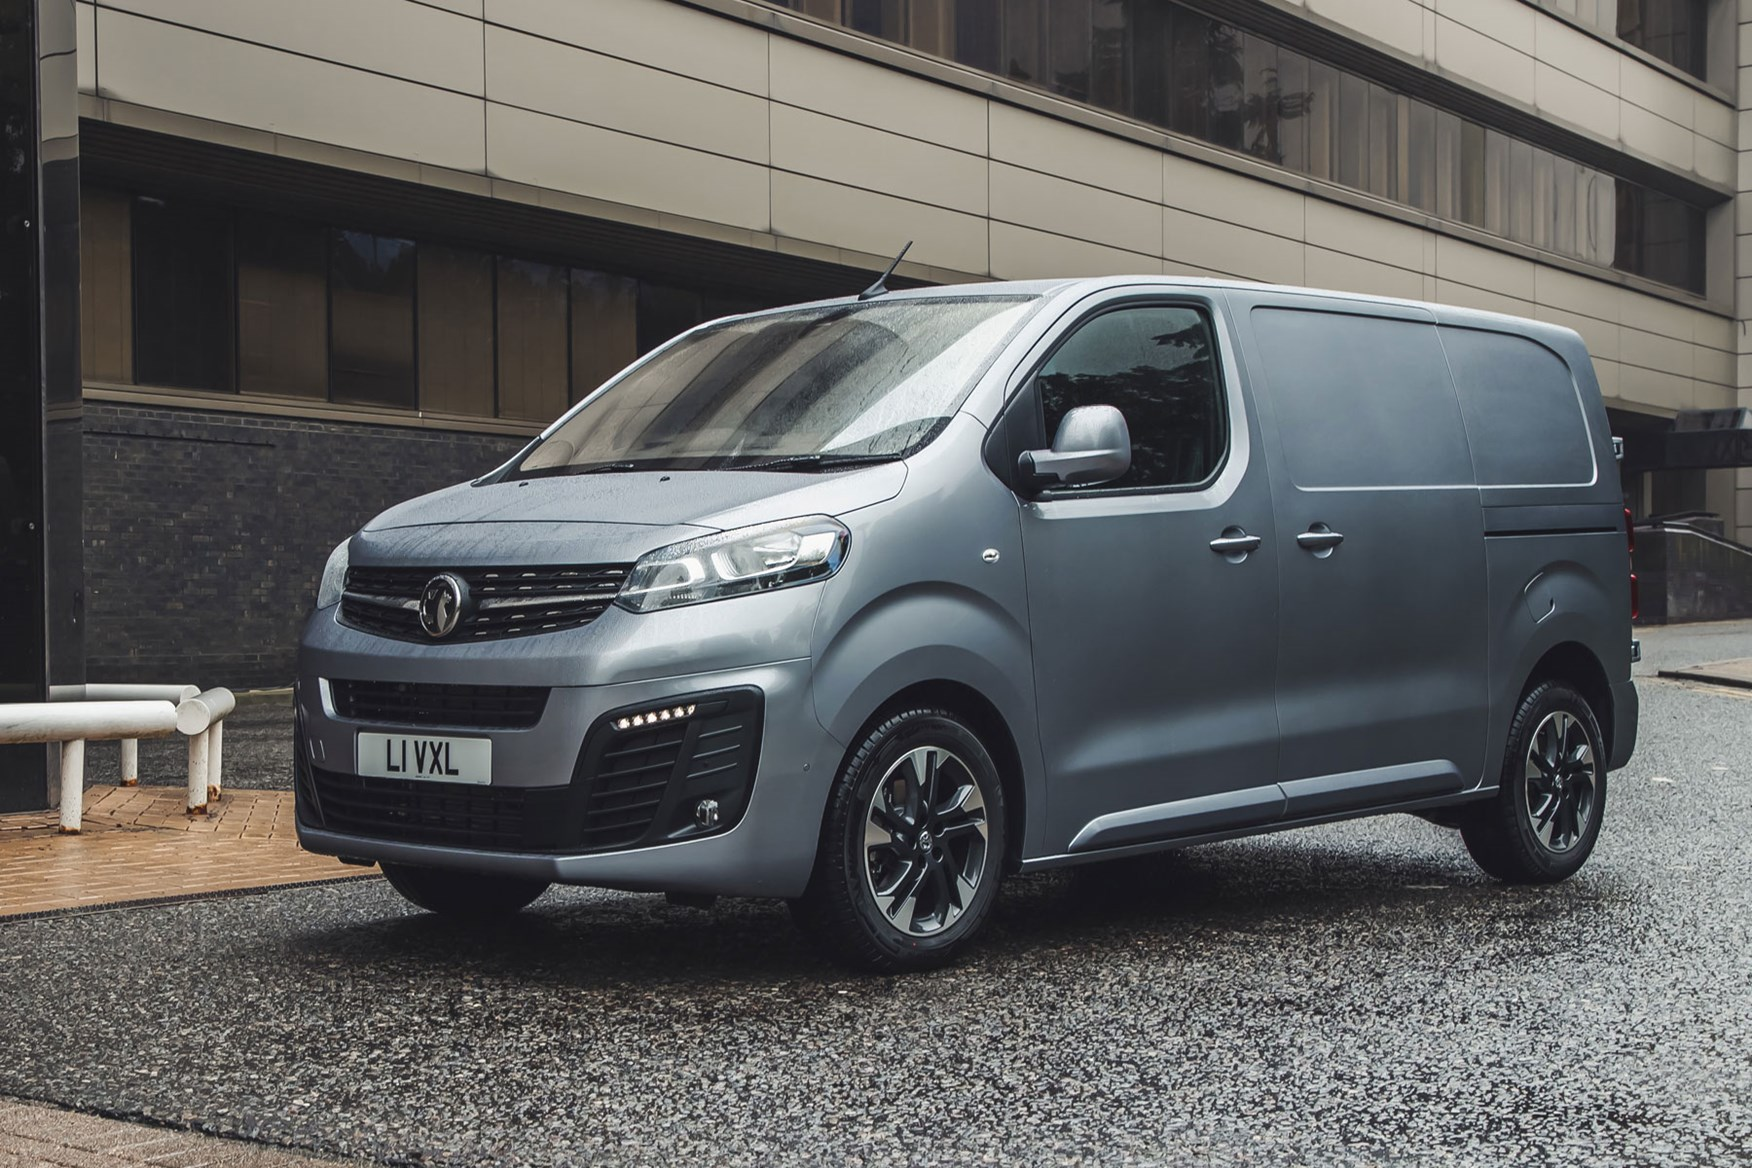 Vauxhall Vivaro review - front view, silver